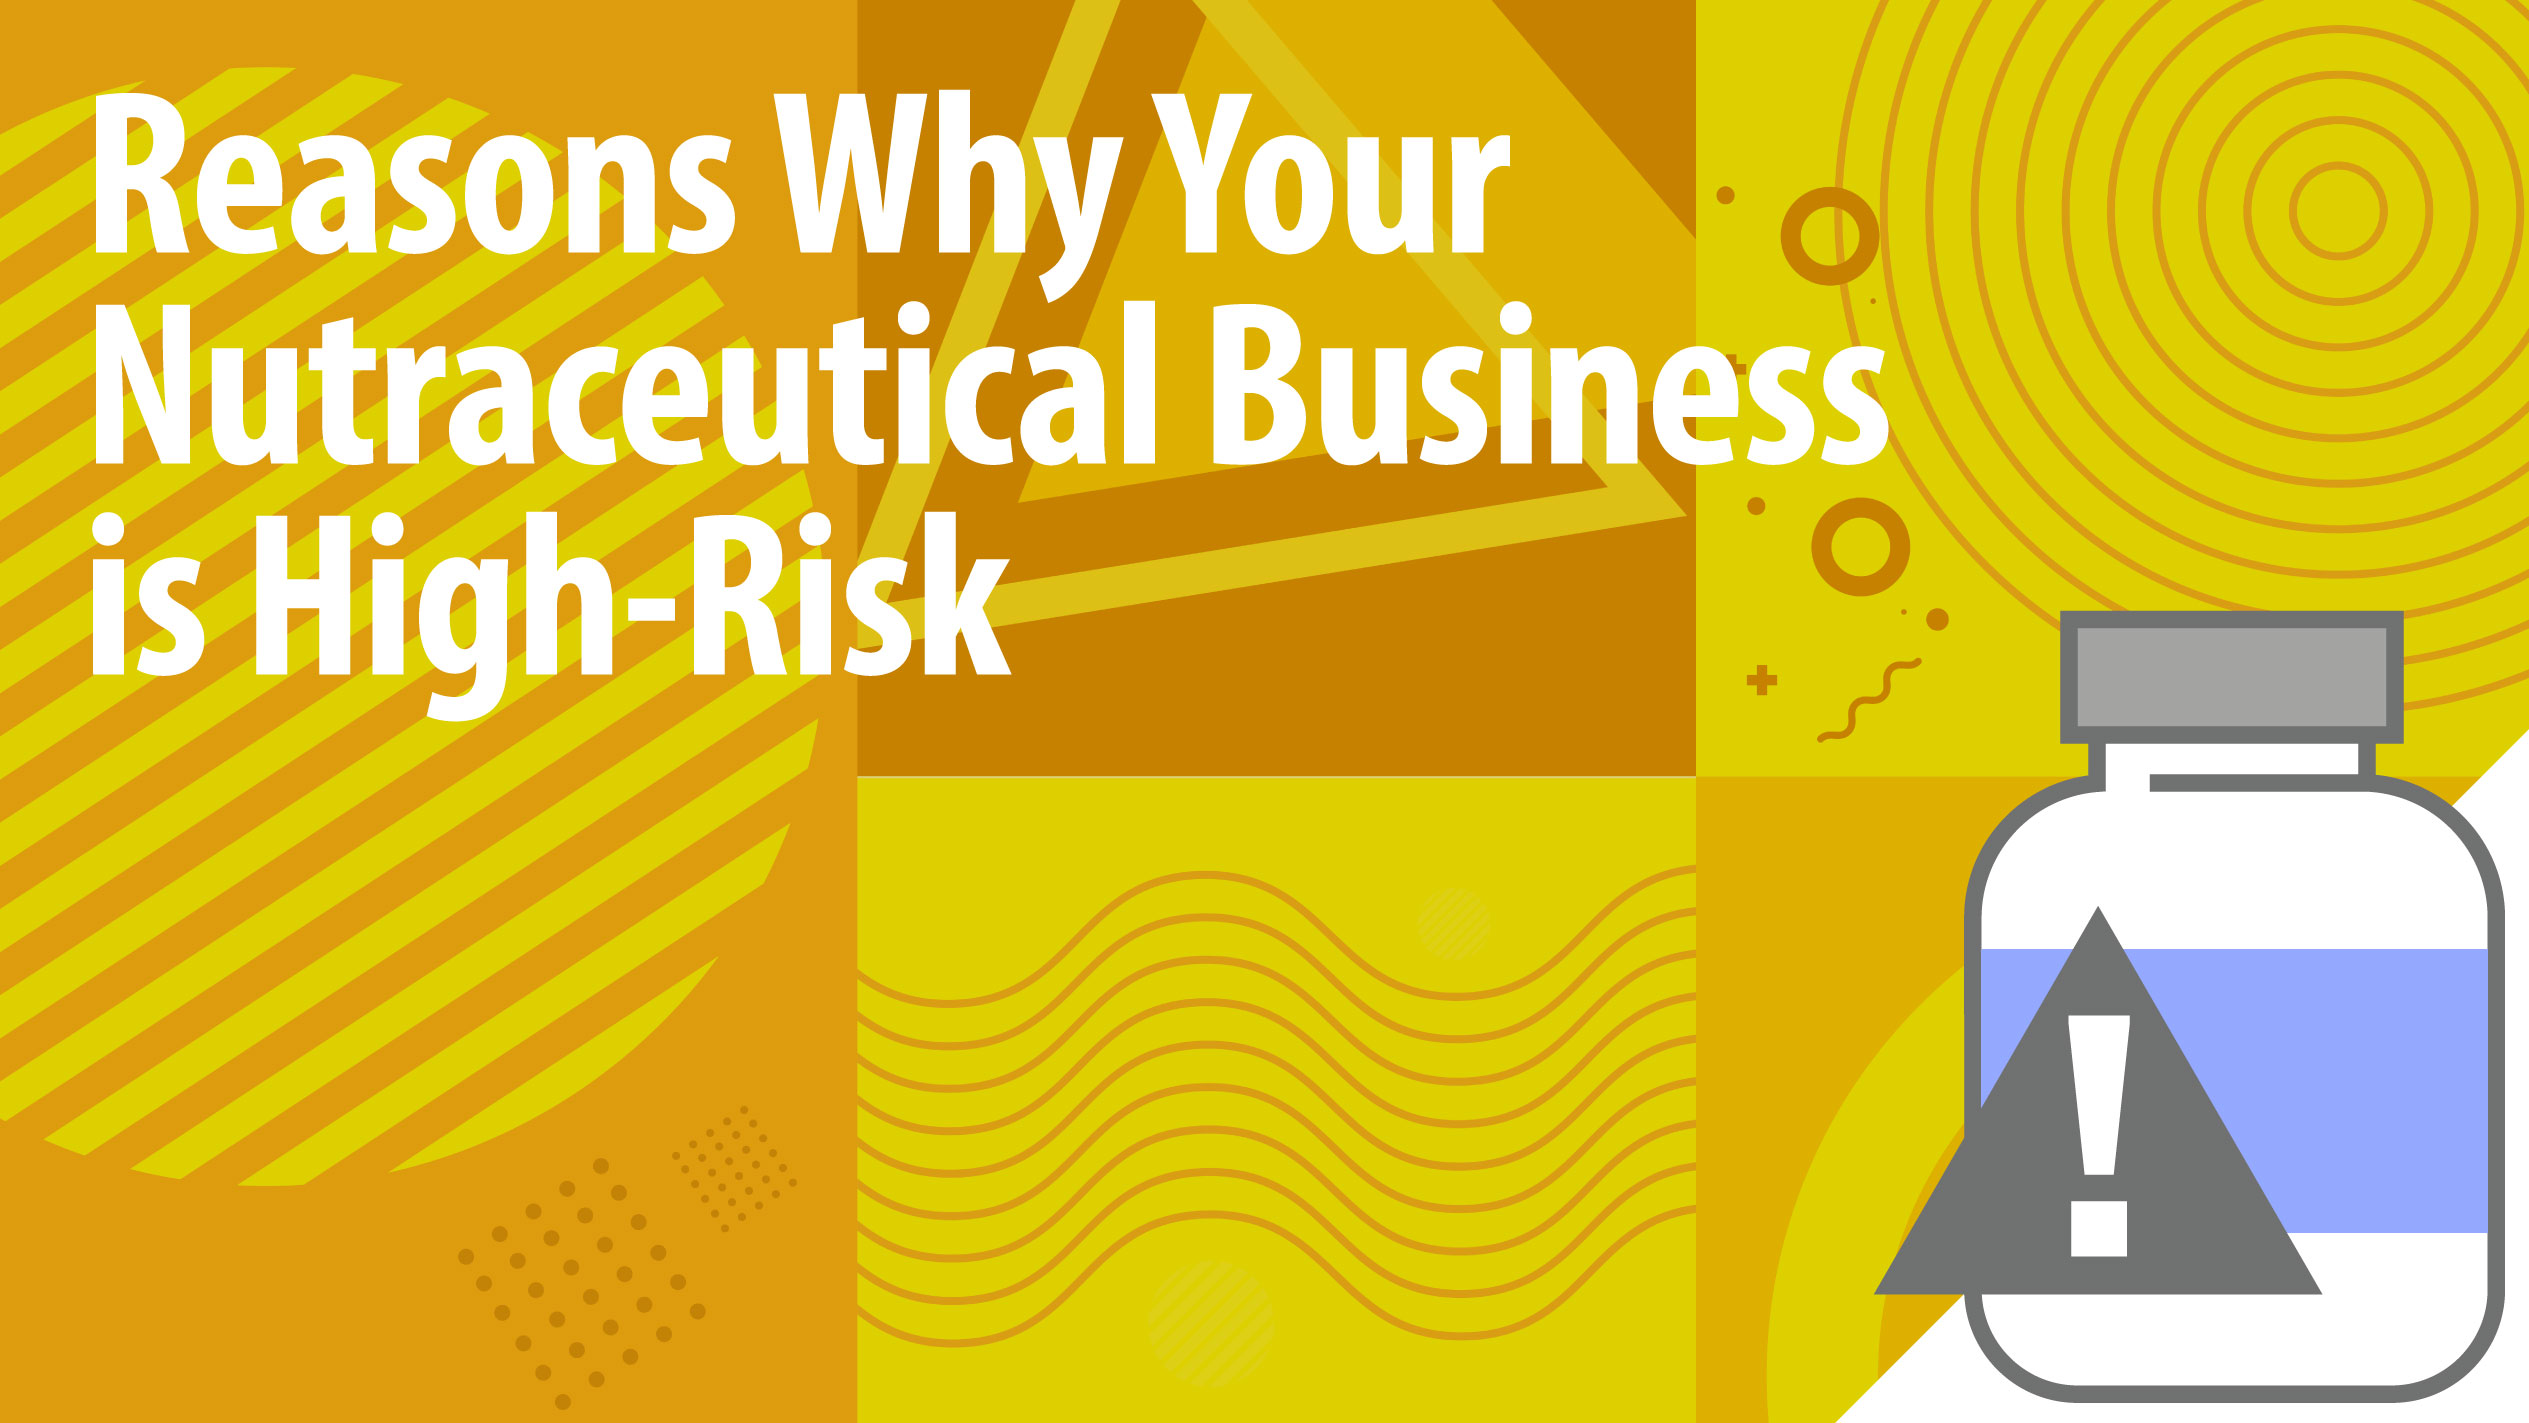 Reasons Why Your Nutraceutical and Supplement Business is High Risk